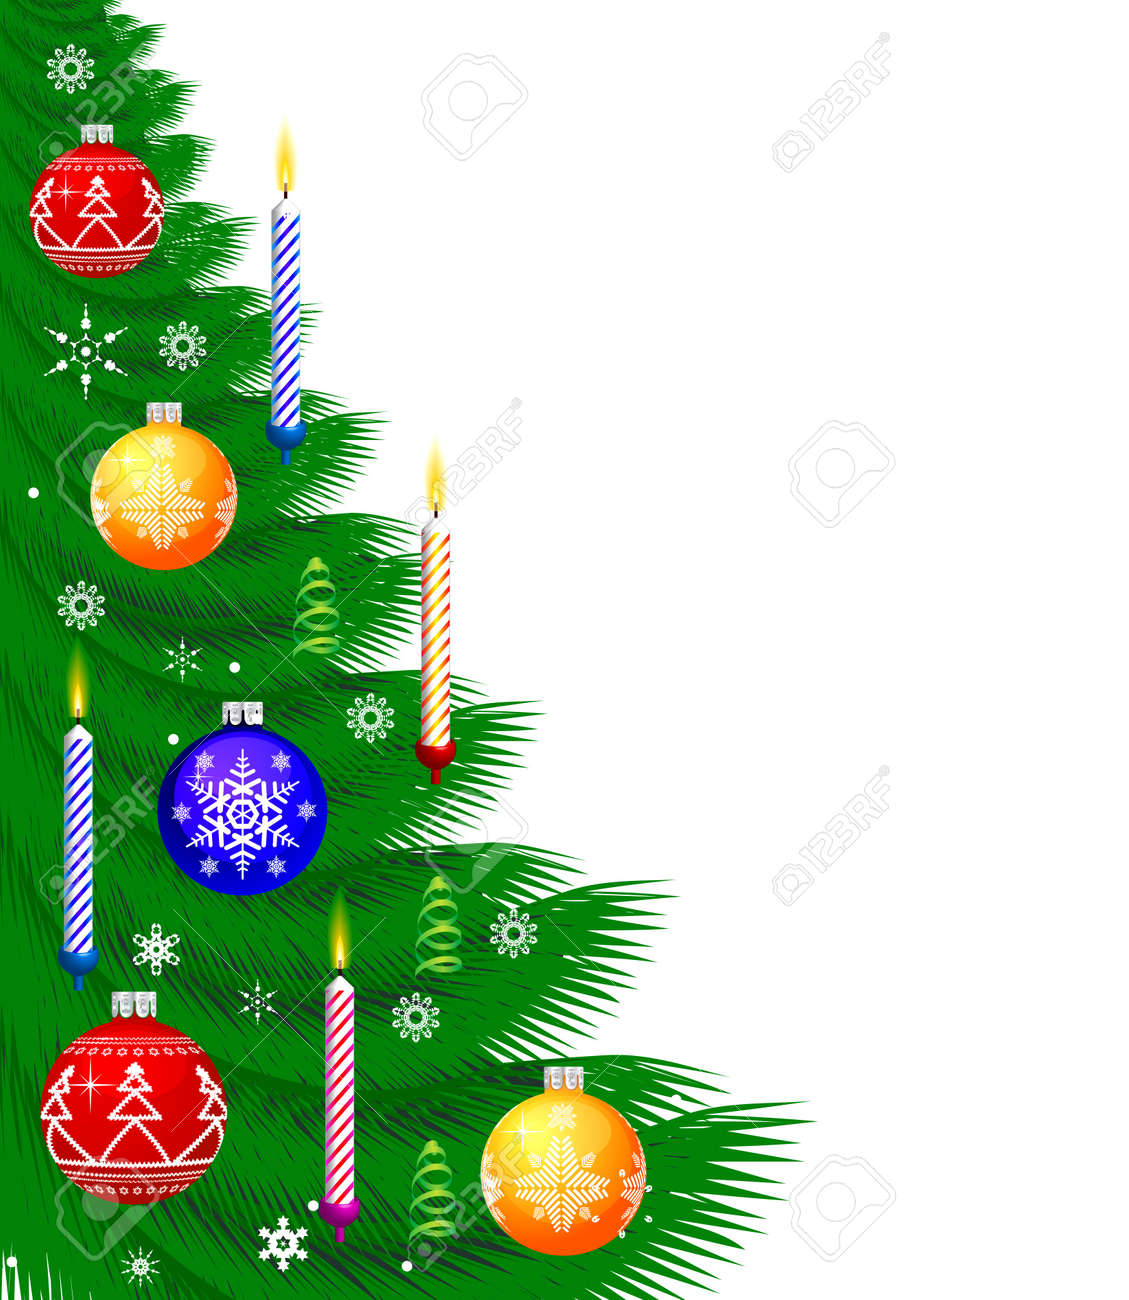 Christmas Background Stock Vector - 8285758